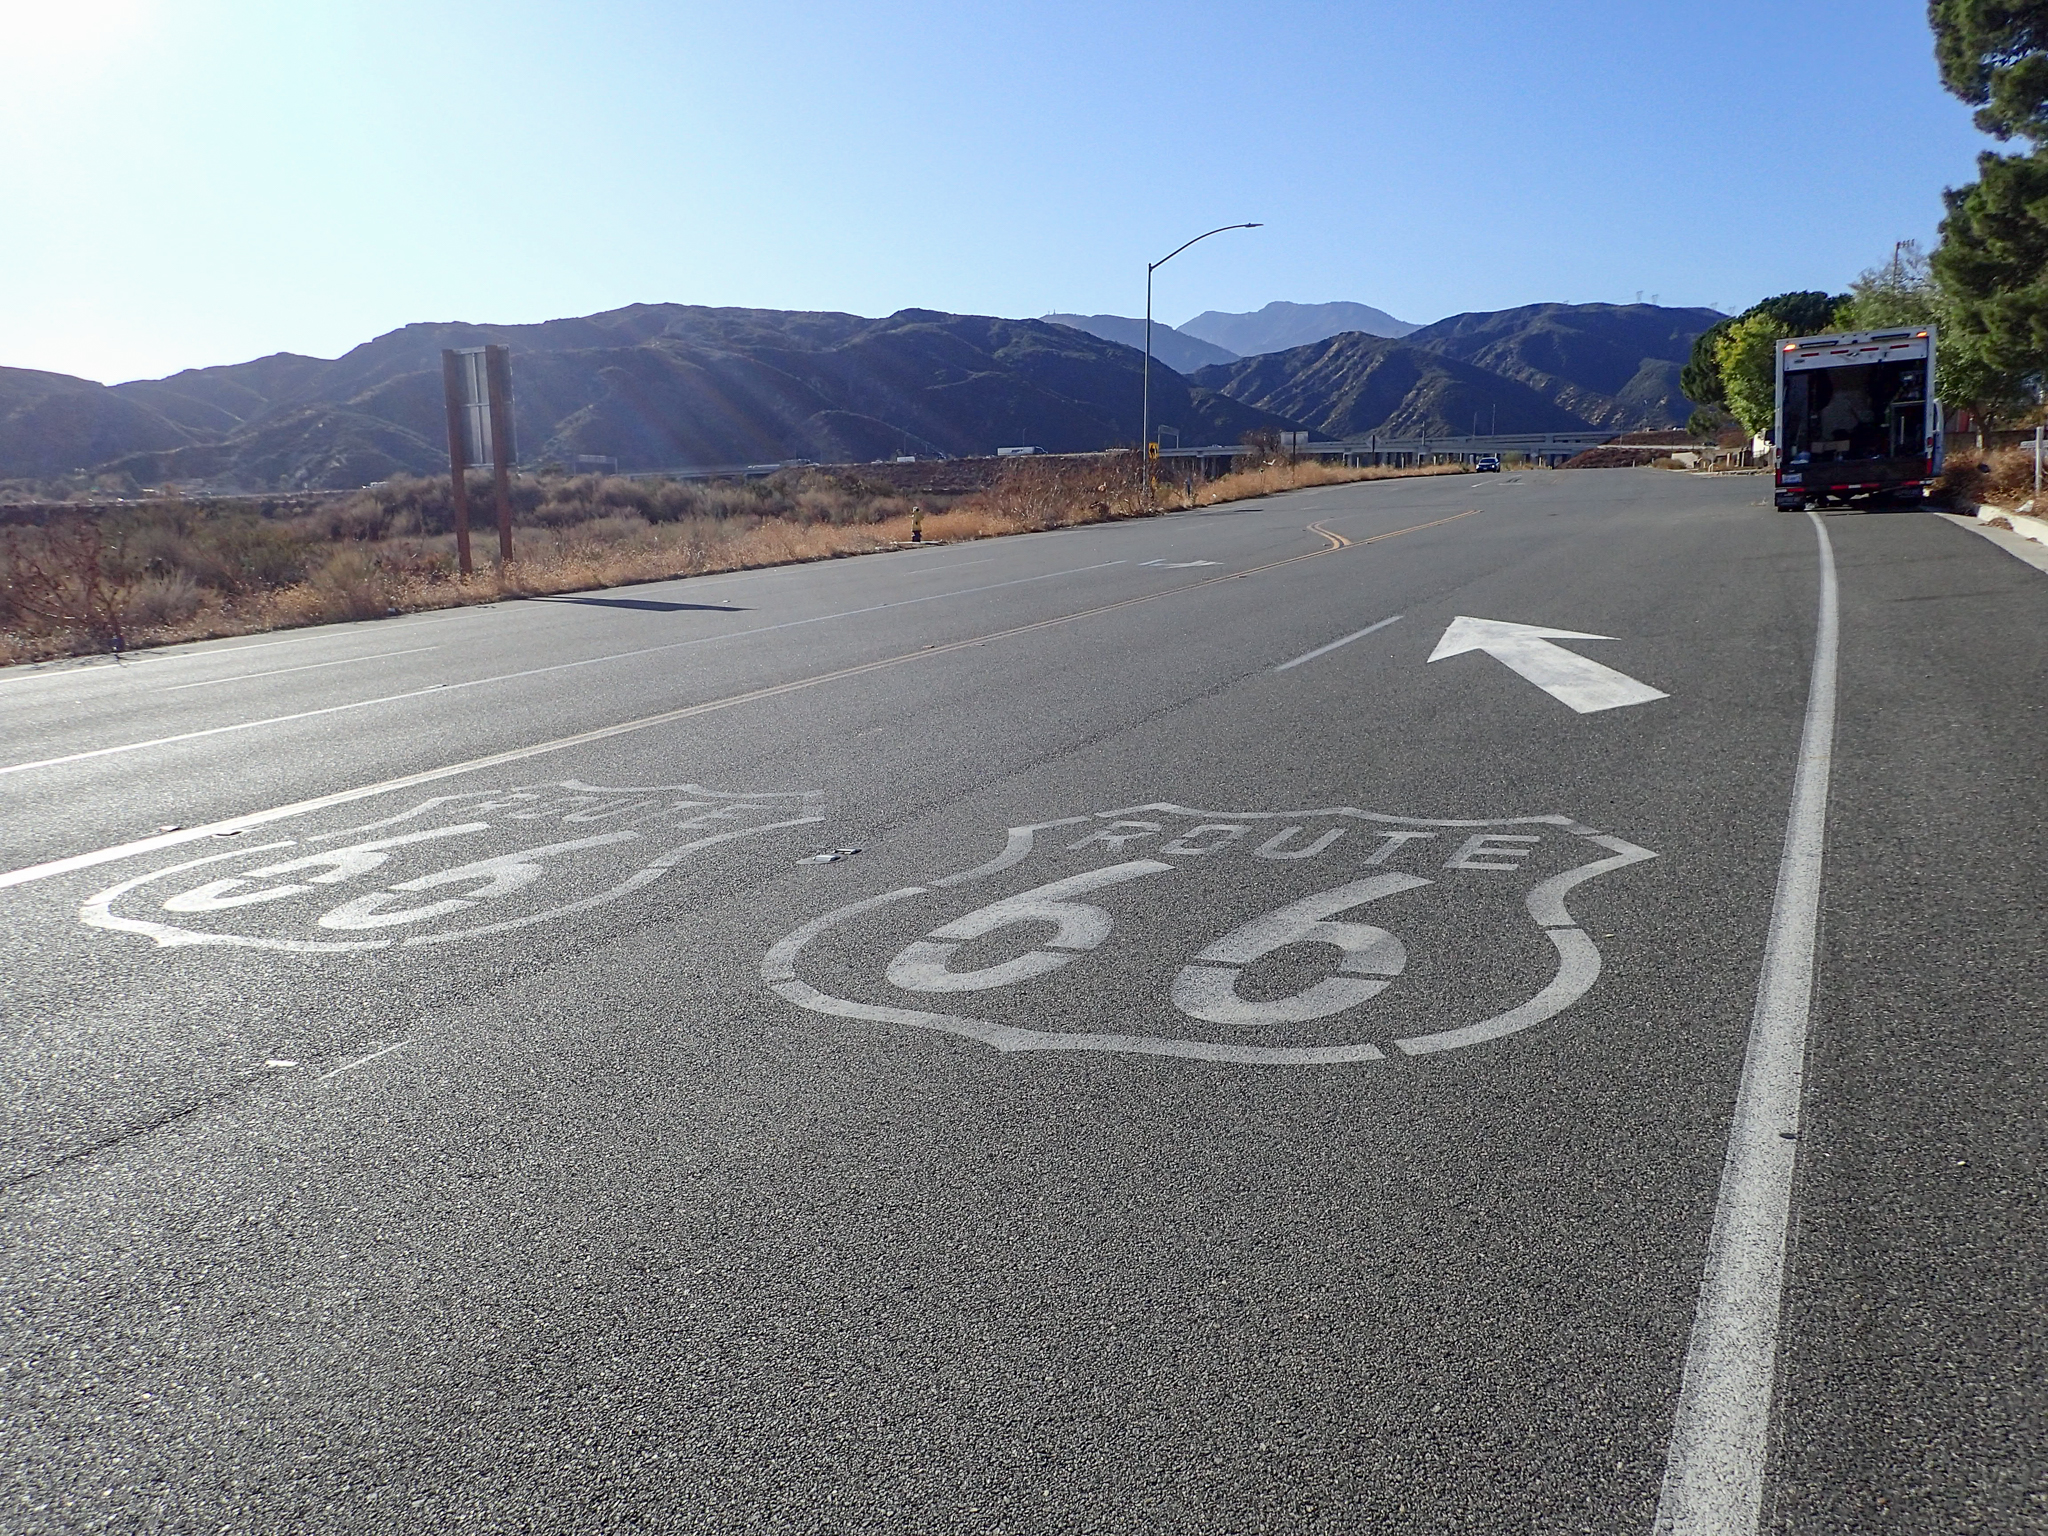 Route 66 and mountains